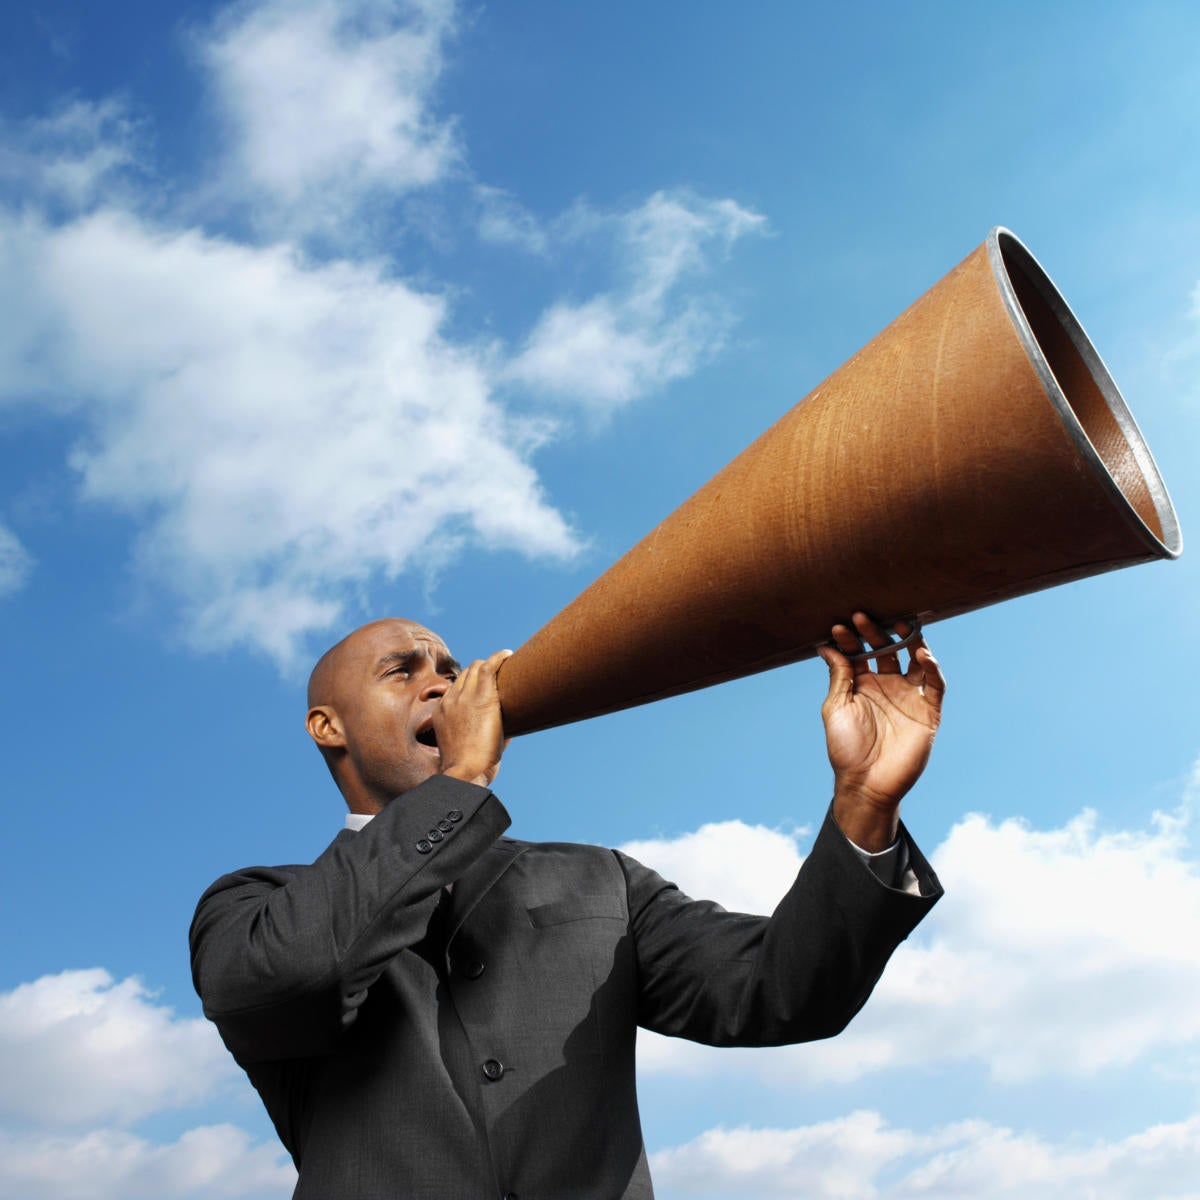 man holding large megaphone against blue cloudy sky